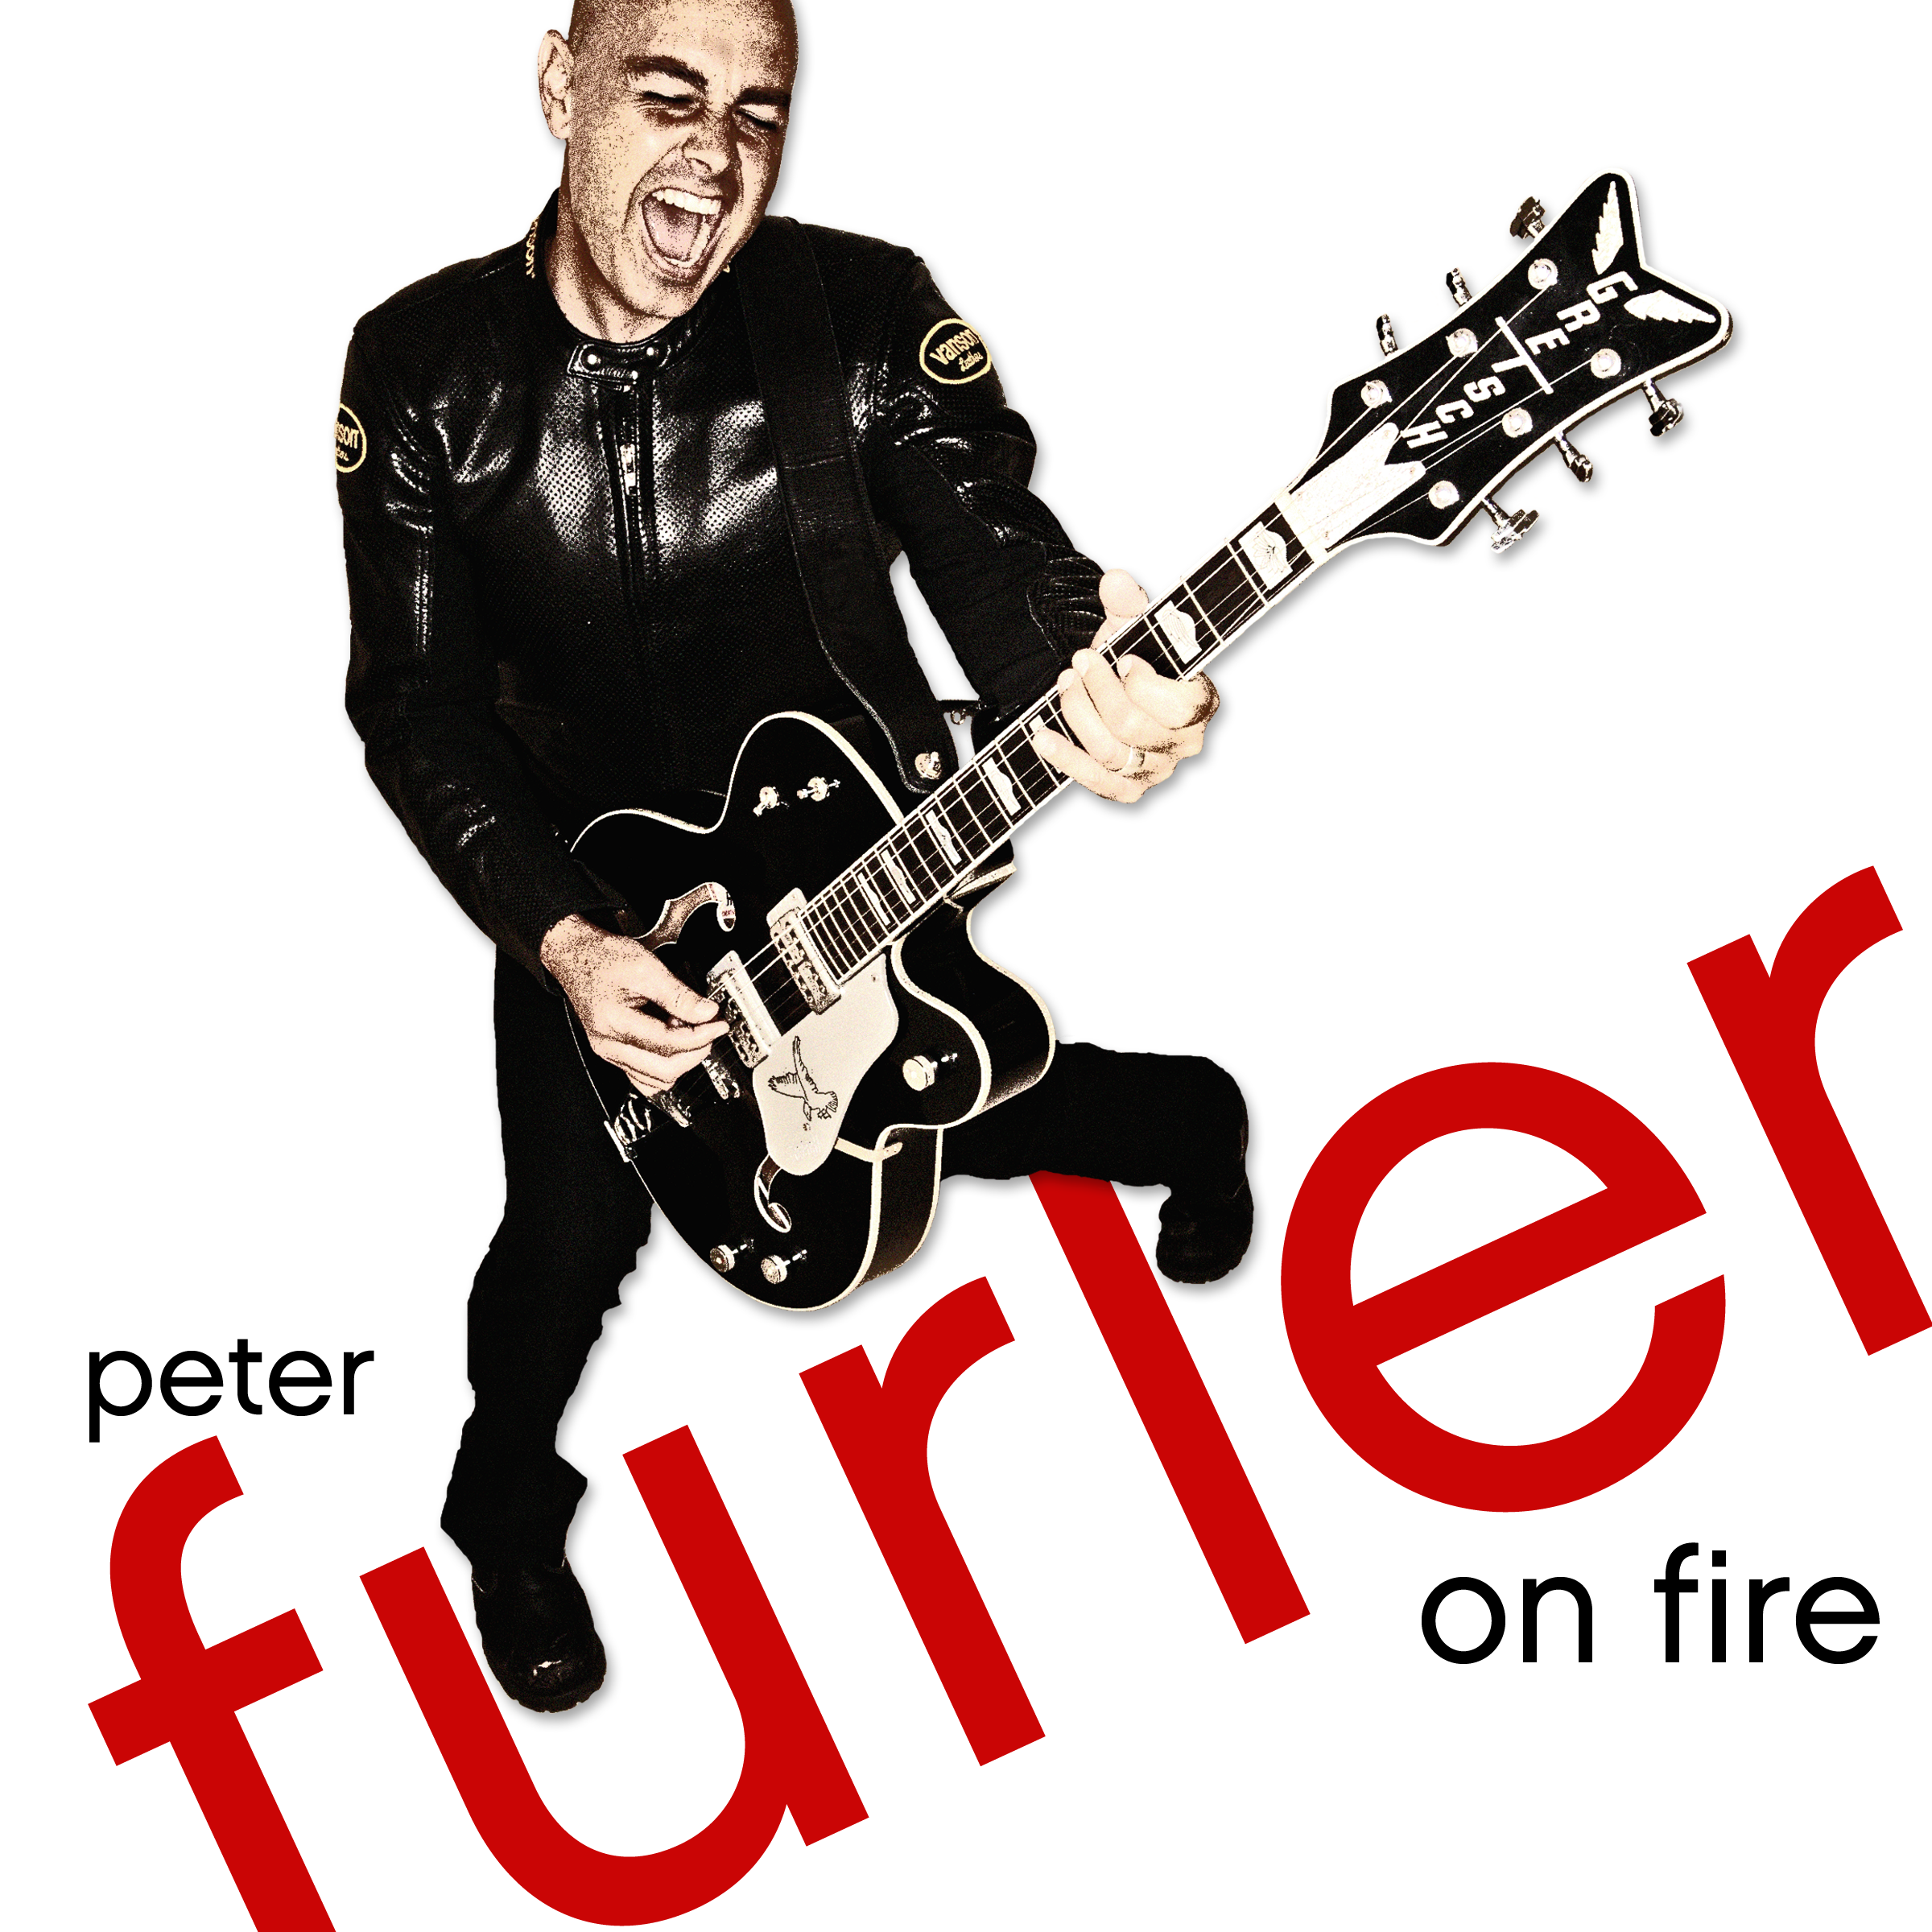 Peter Furler Discusses New Album On Fire And Life After The